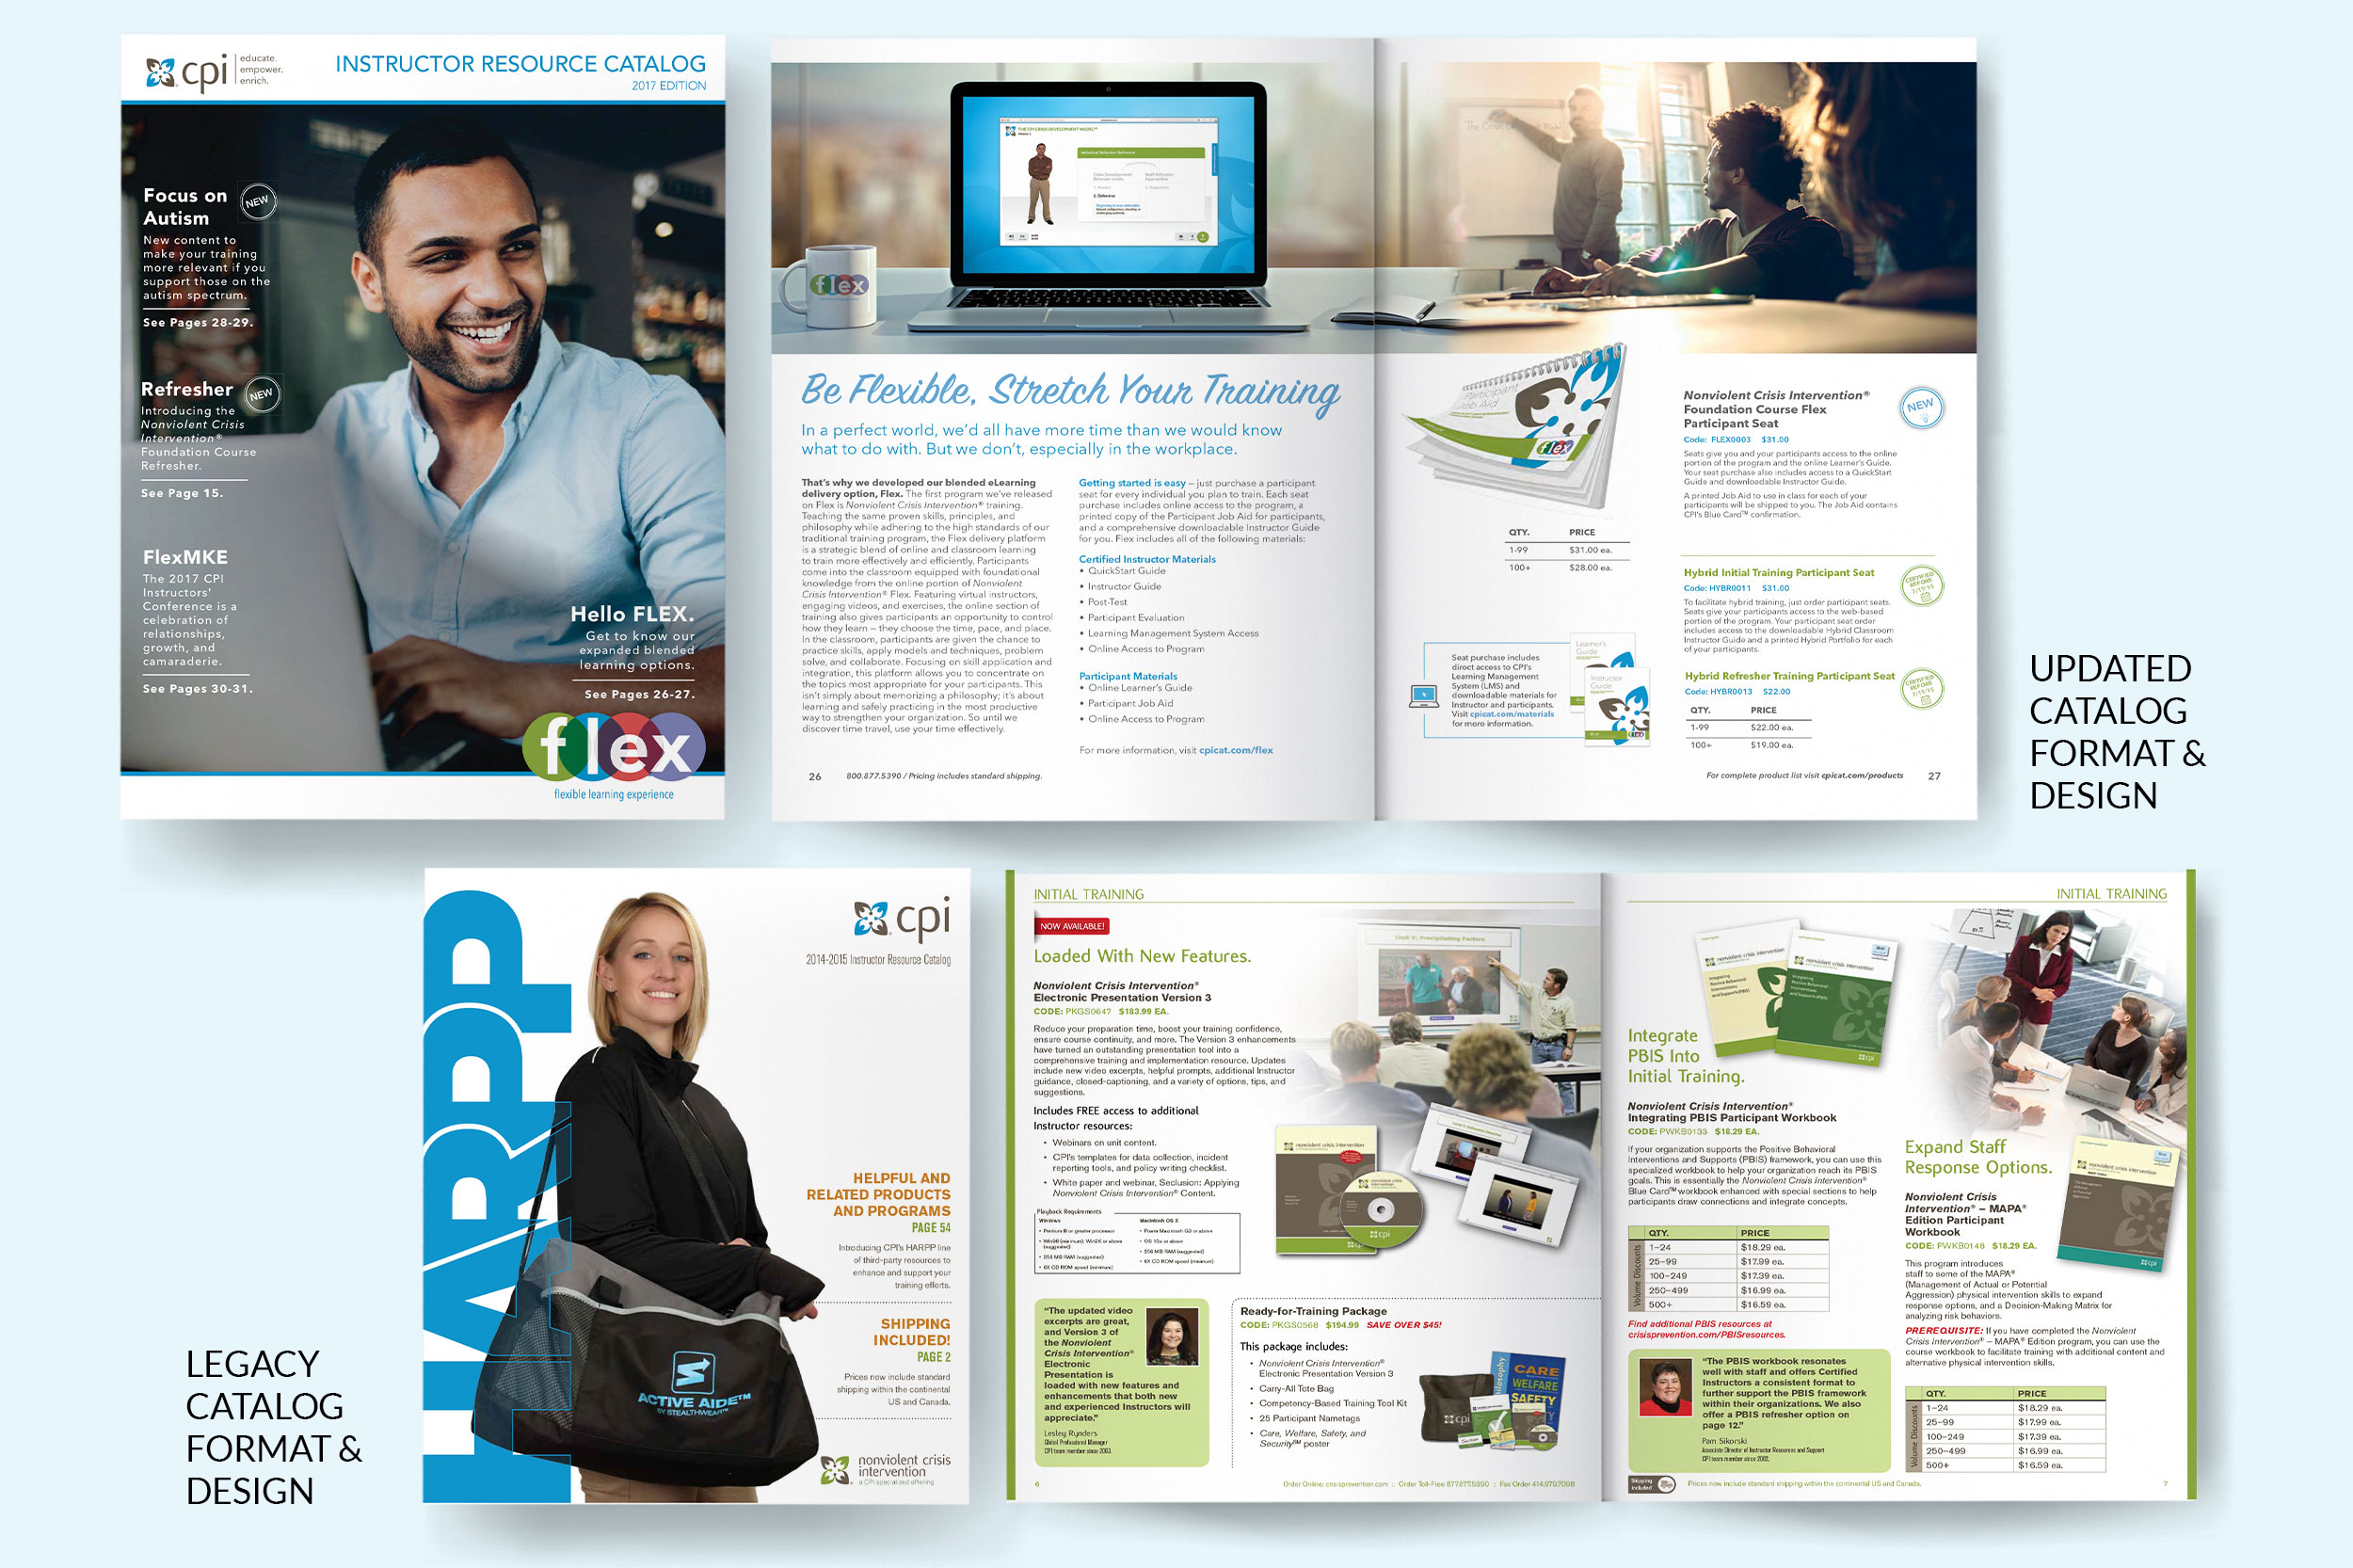 CPI Product Catalog Redesign -